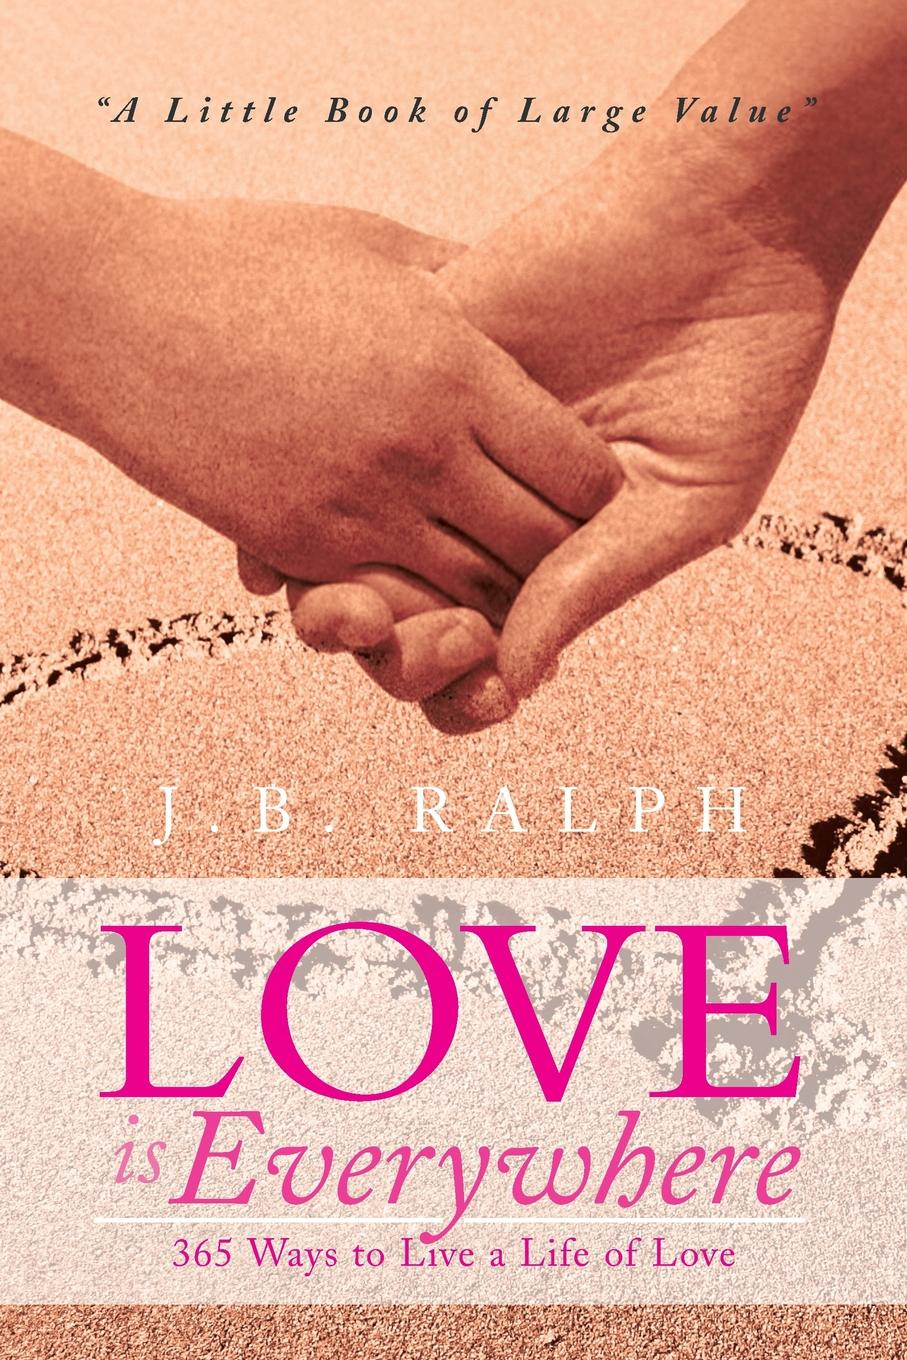 J. B. Ralph Love Is Everywhere 365 Ways to Live a Life of Love. A Little Book of Large Value витамины 365 everyday value